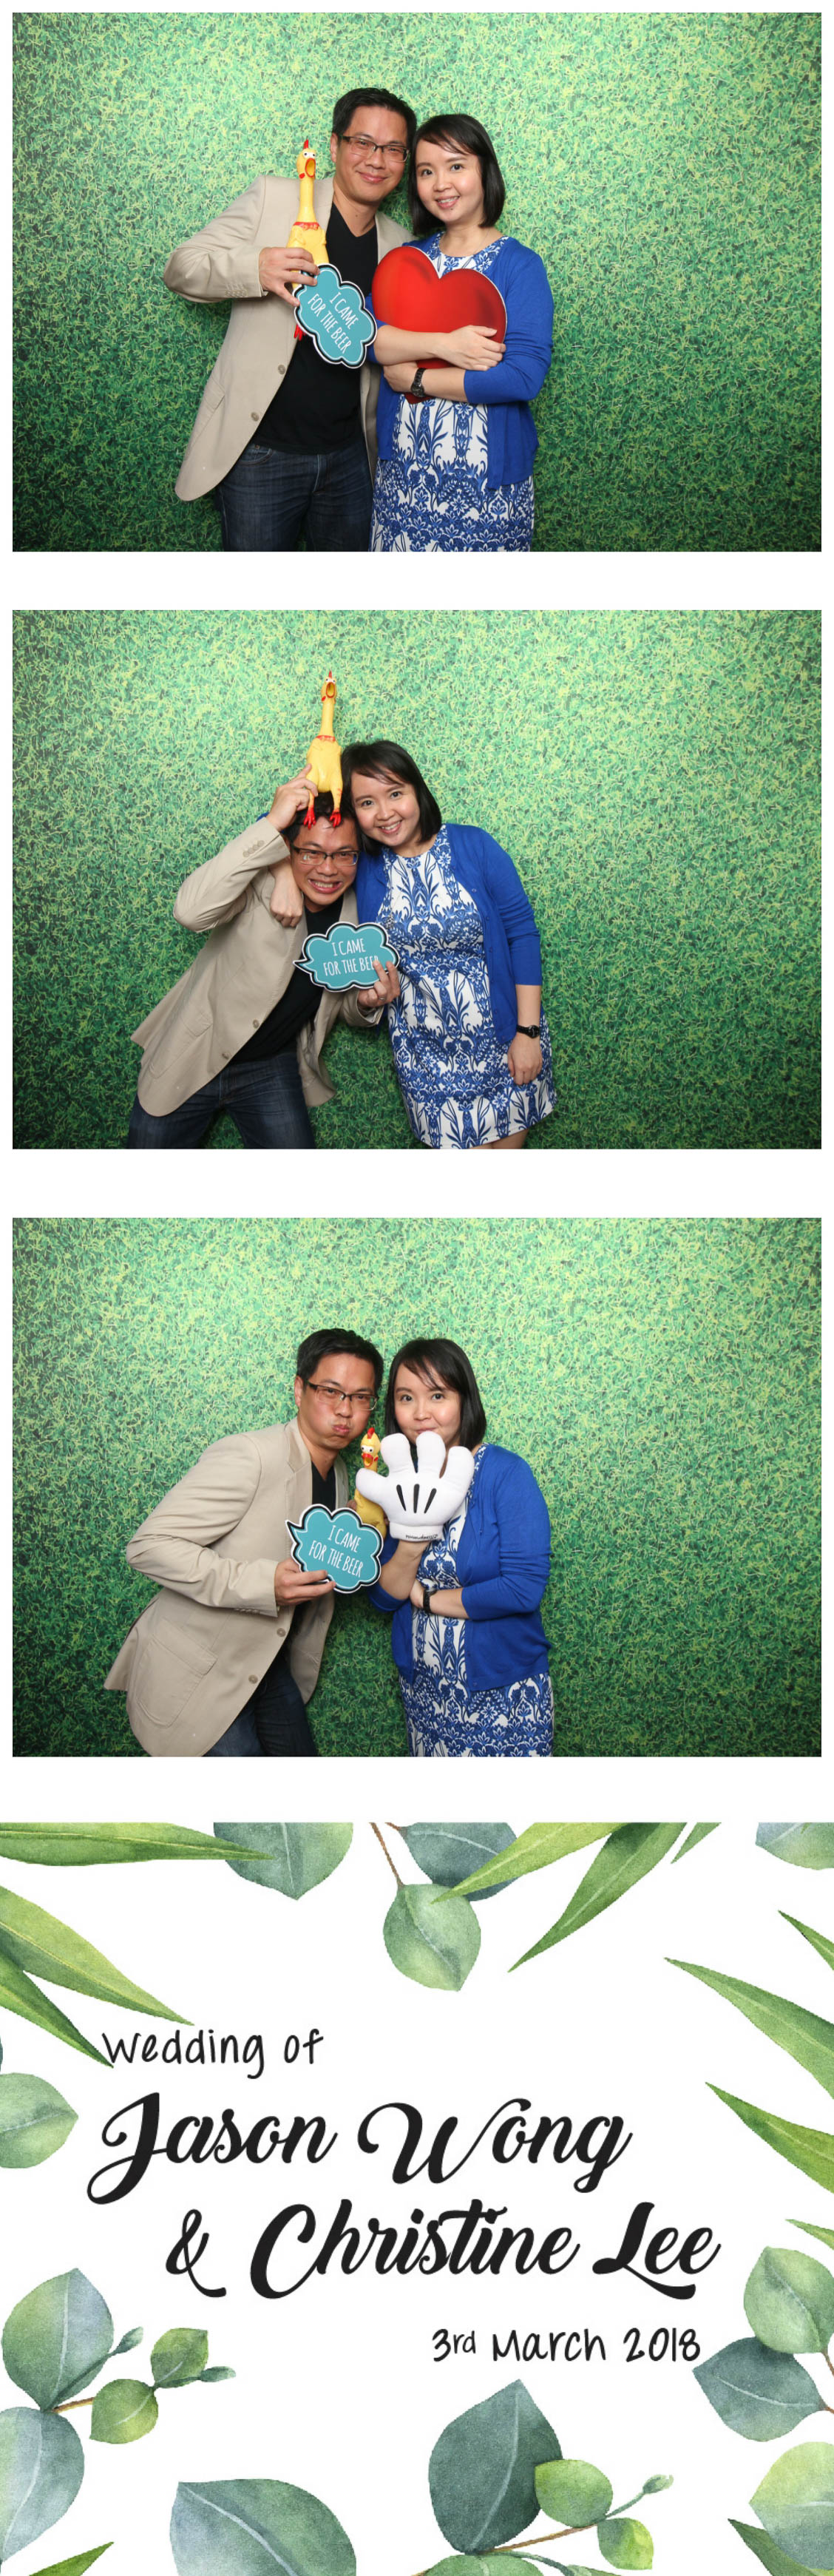 Photobooth 0302-24